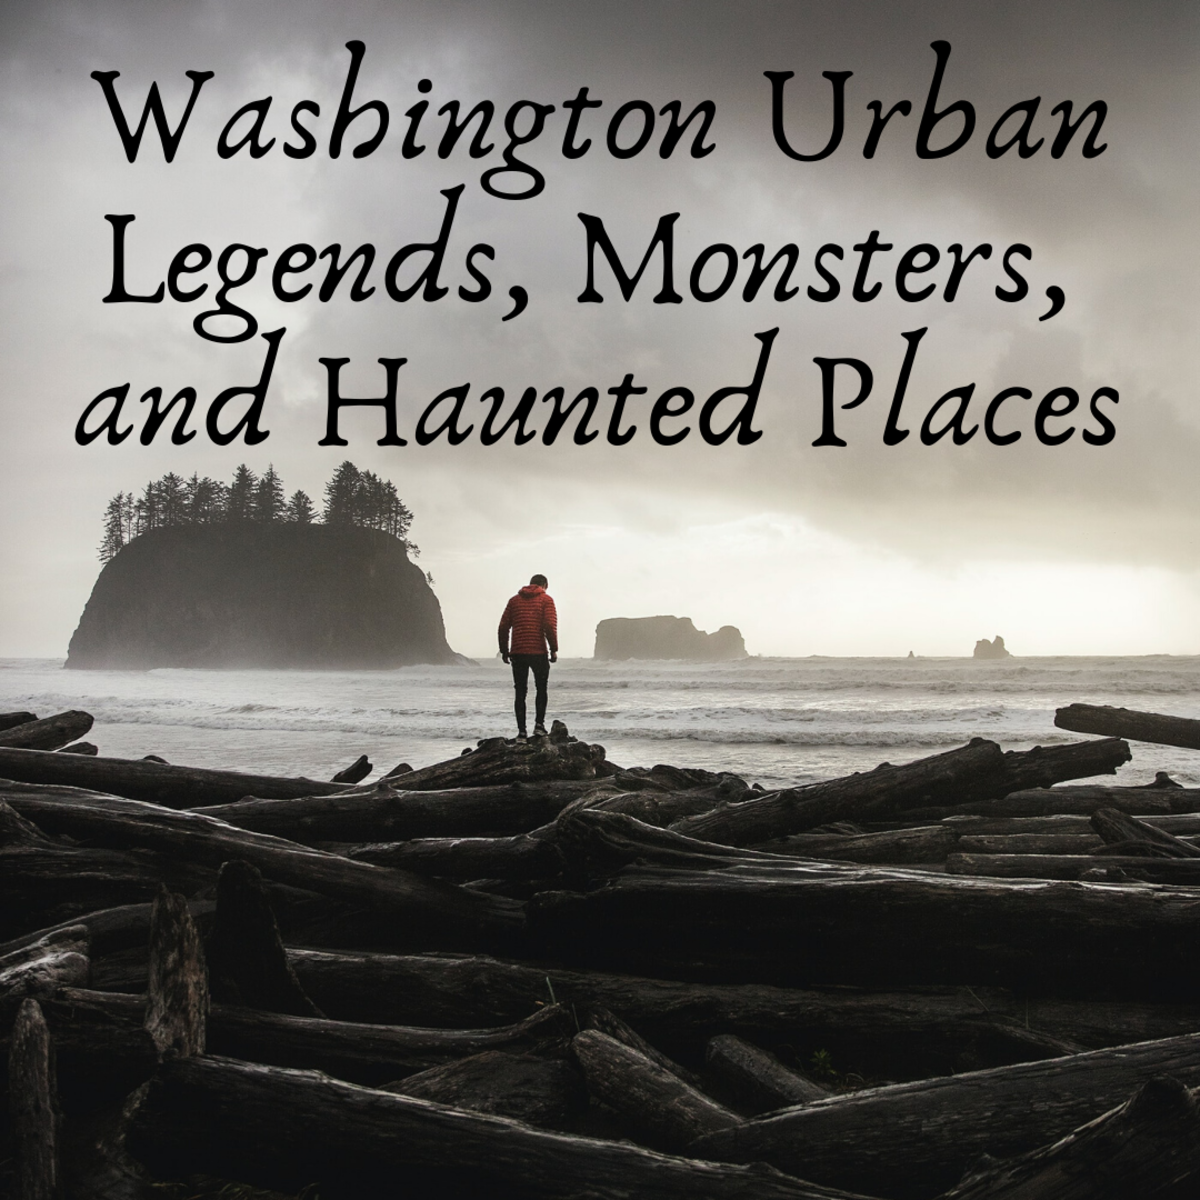 Washington Edition—Urban Legends, Monsters, and Haunted Places